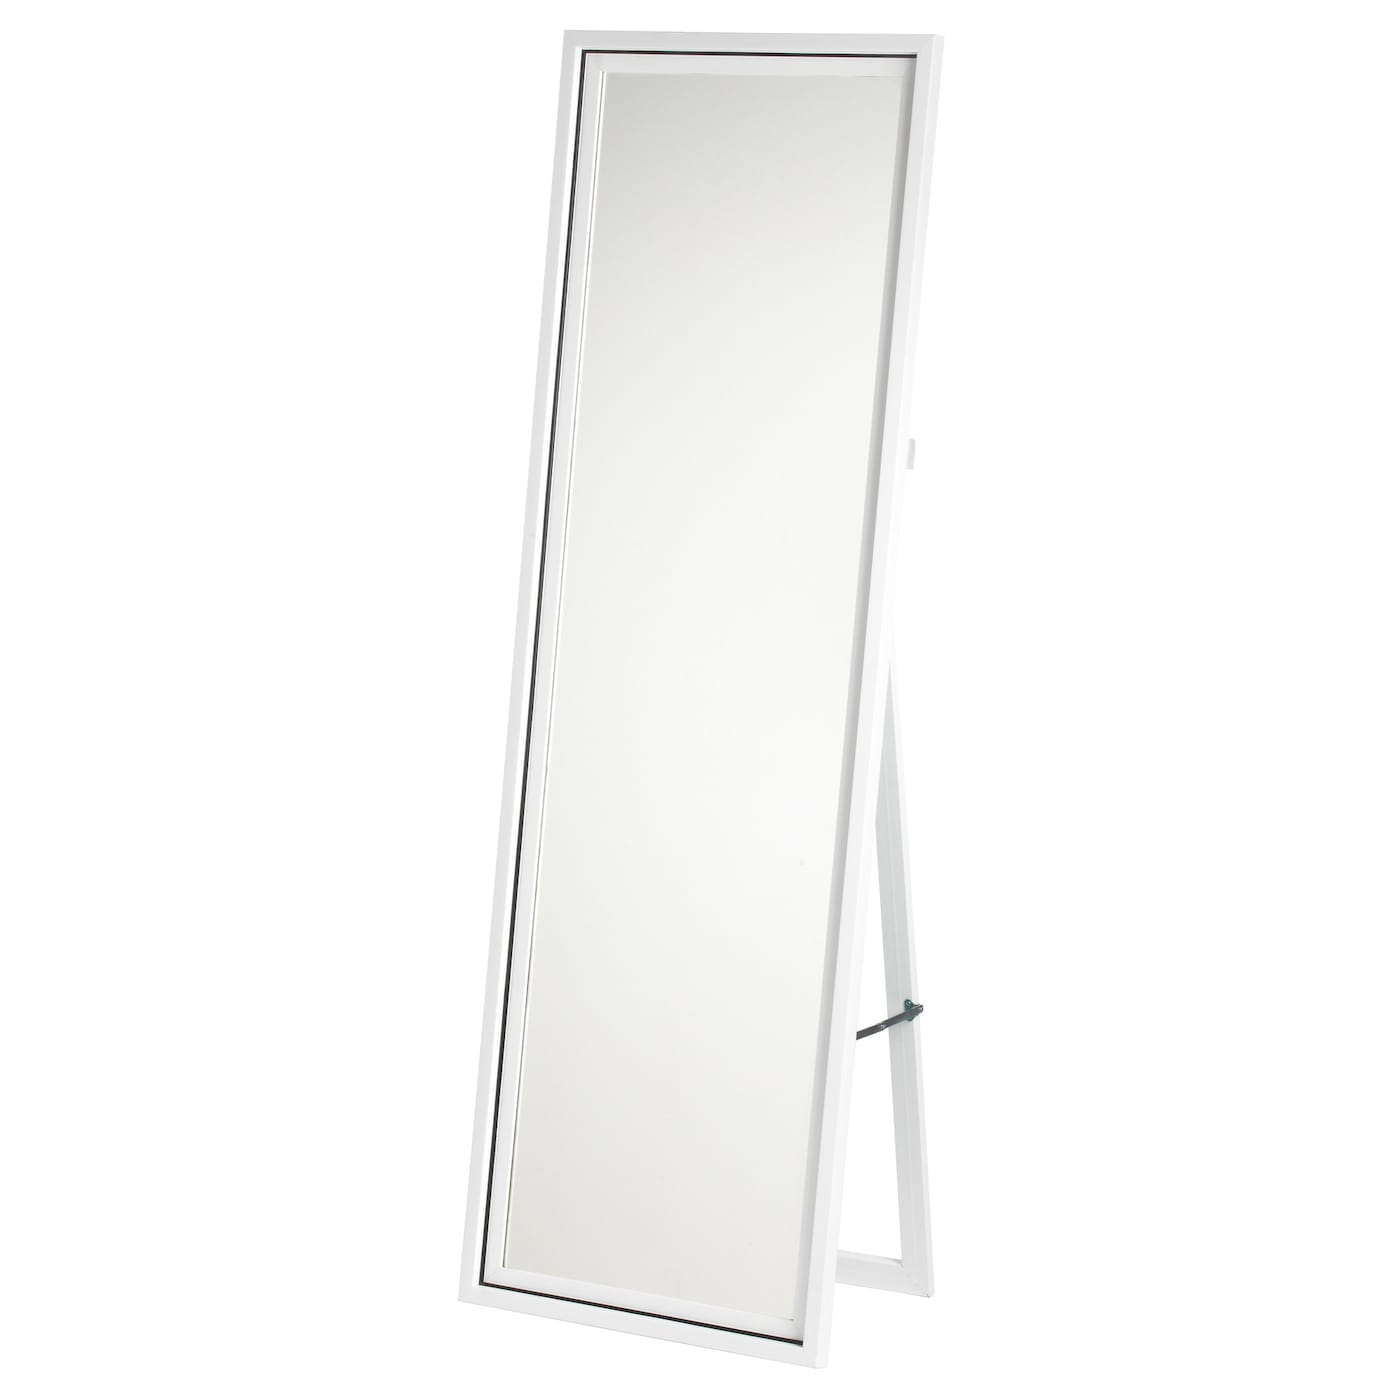 Mirrors ikea ireland dublin for Long standing mirror